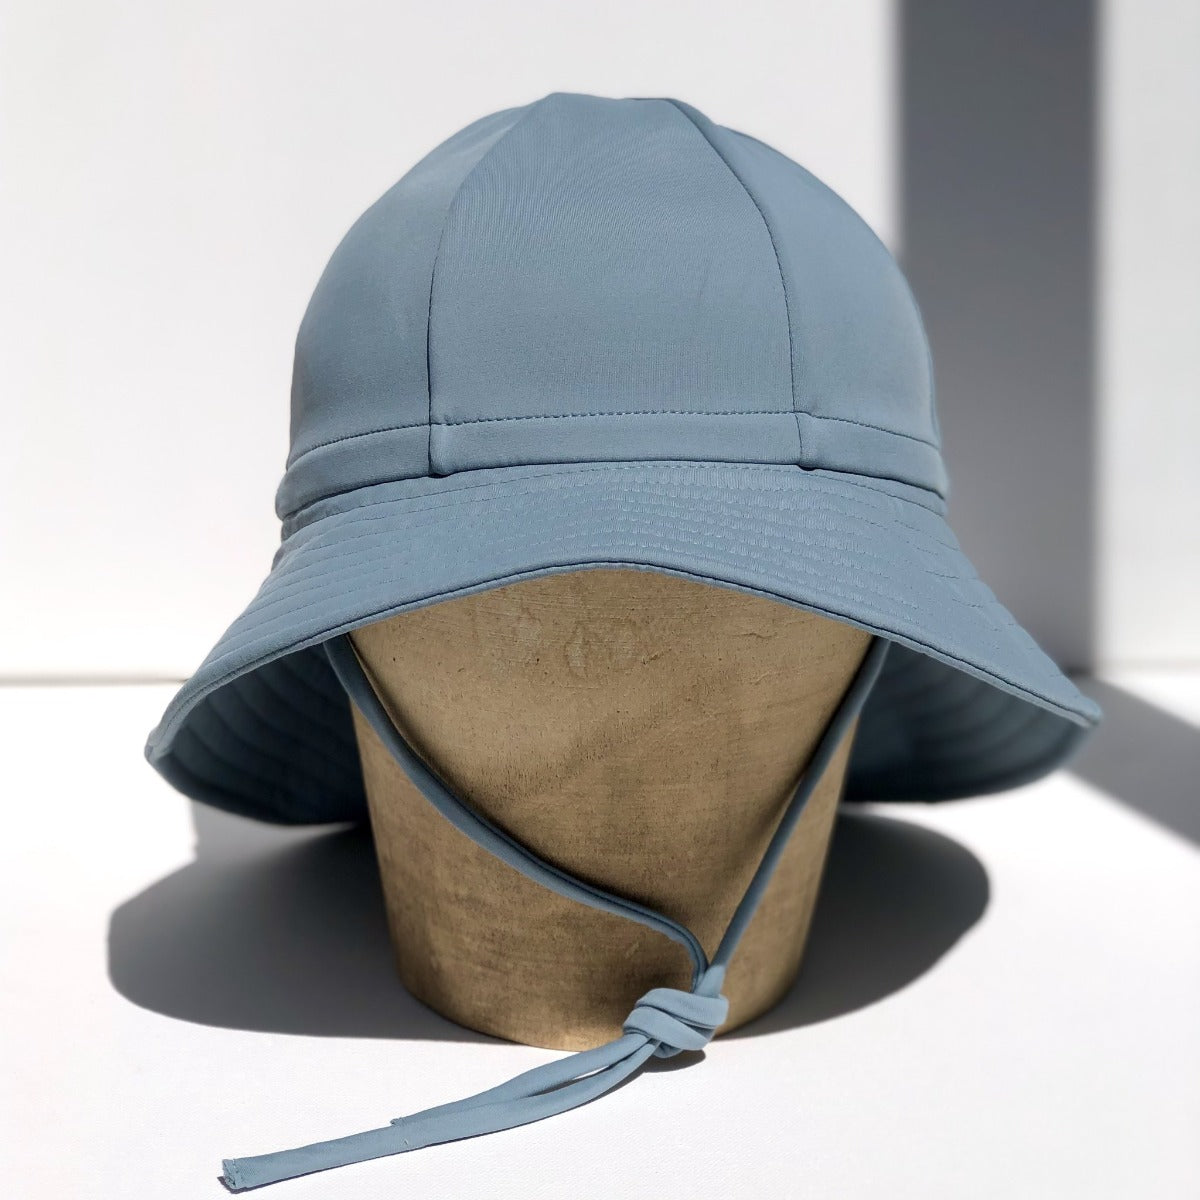 US stockist of Fini the Label's gender neutral, floppy swim hat in heaven. Features elongated back for added sun protection, chin strap and adjustable bow around crown for better fit. Brim is medium stiffness and can be flipped up at front.  Made from nylon/spandex and is quick drying.